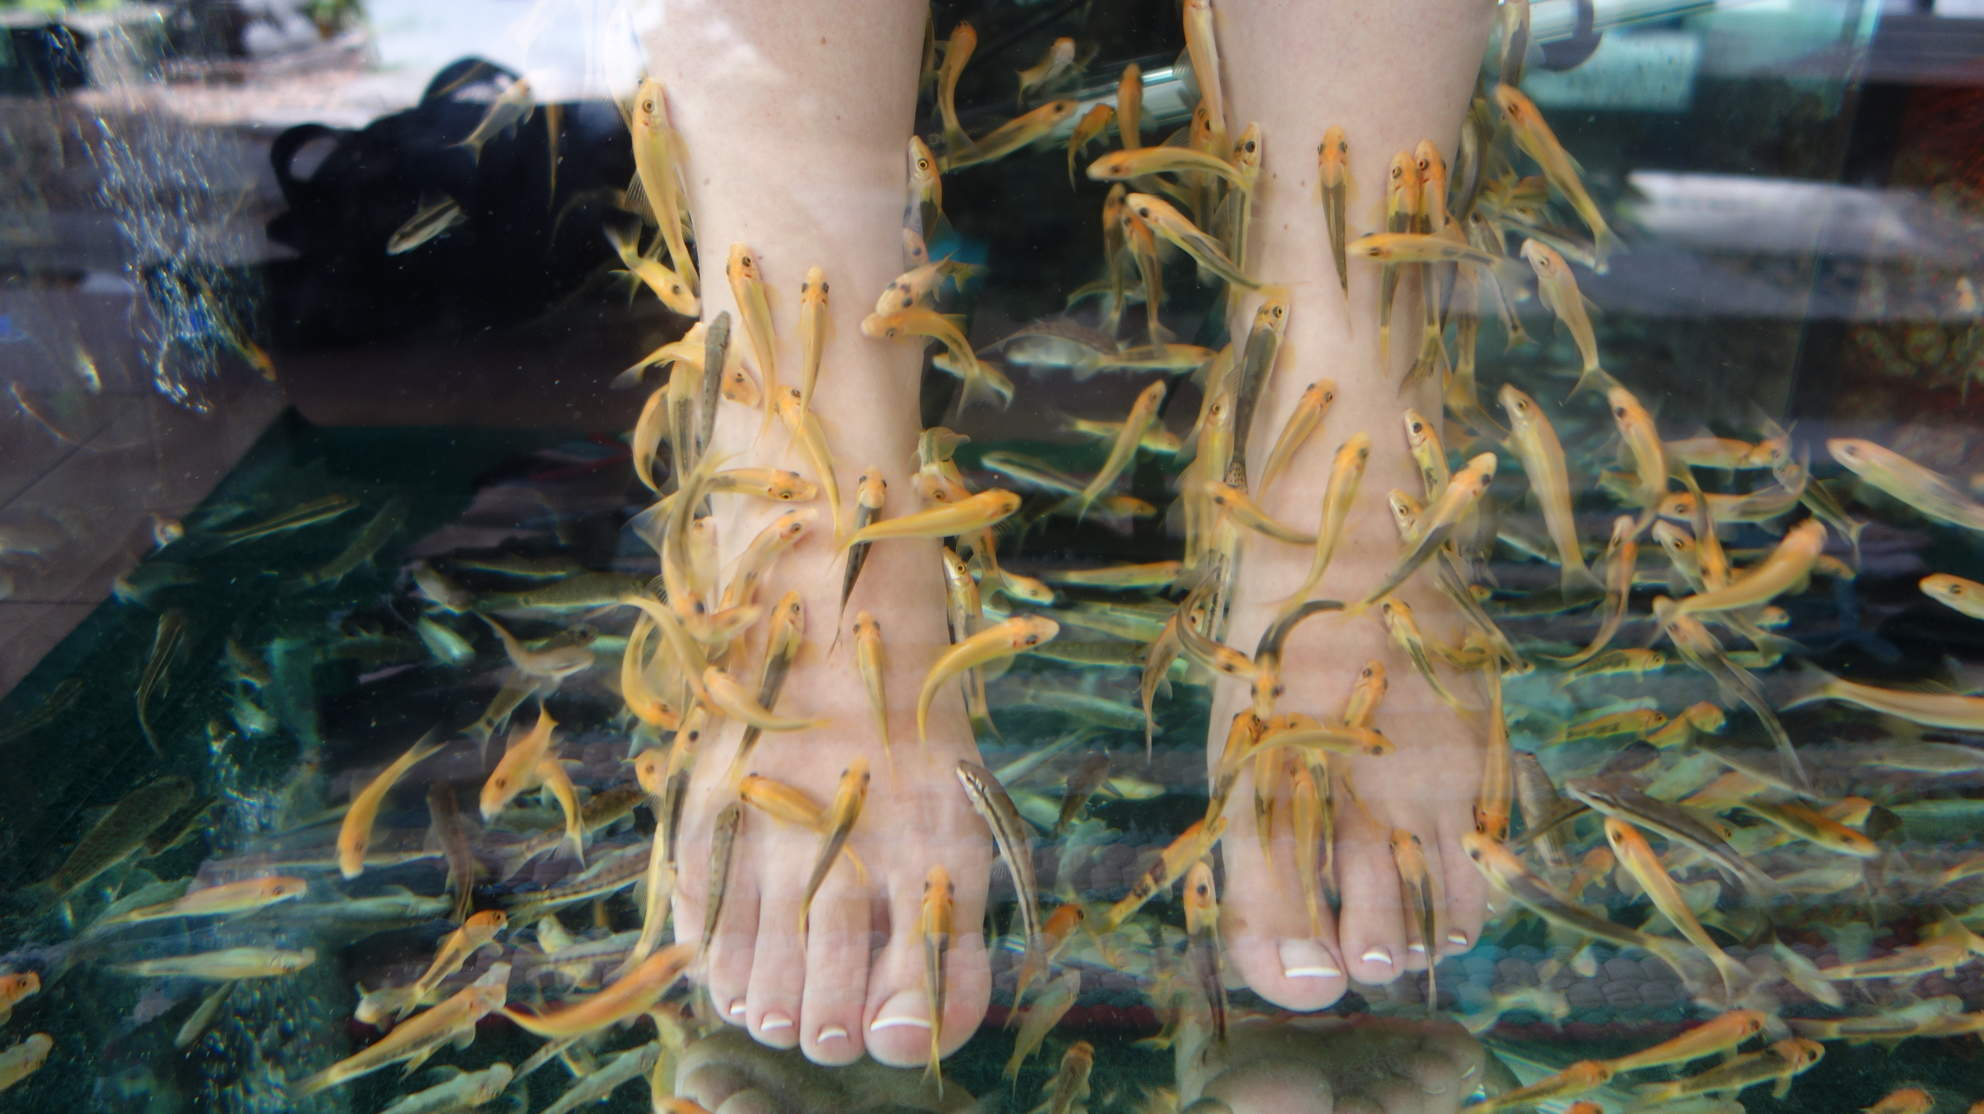 A Fish Pedicure Caused a Woman's Toenails to Stop Growing and Fall Off, According to Her Doctor